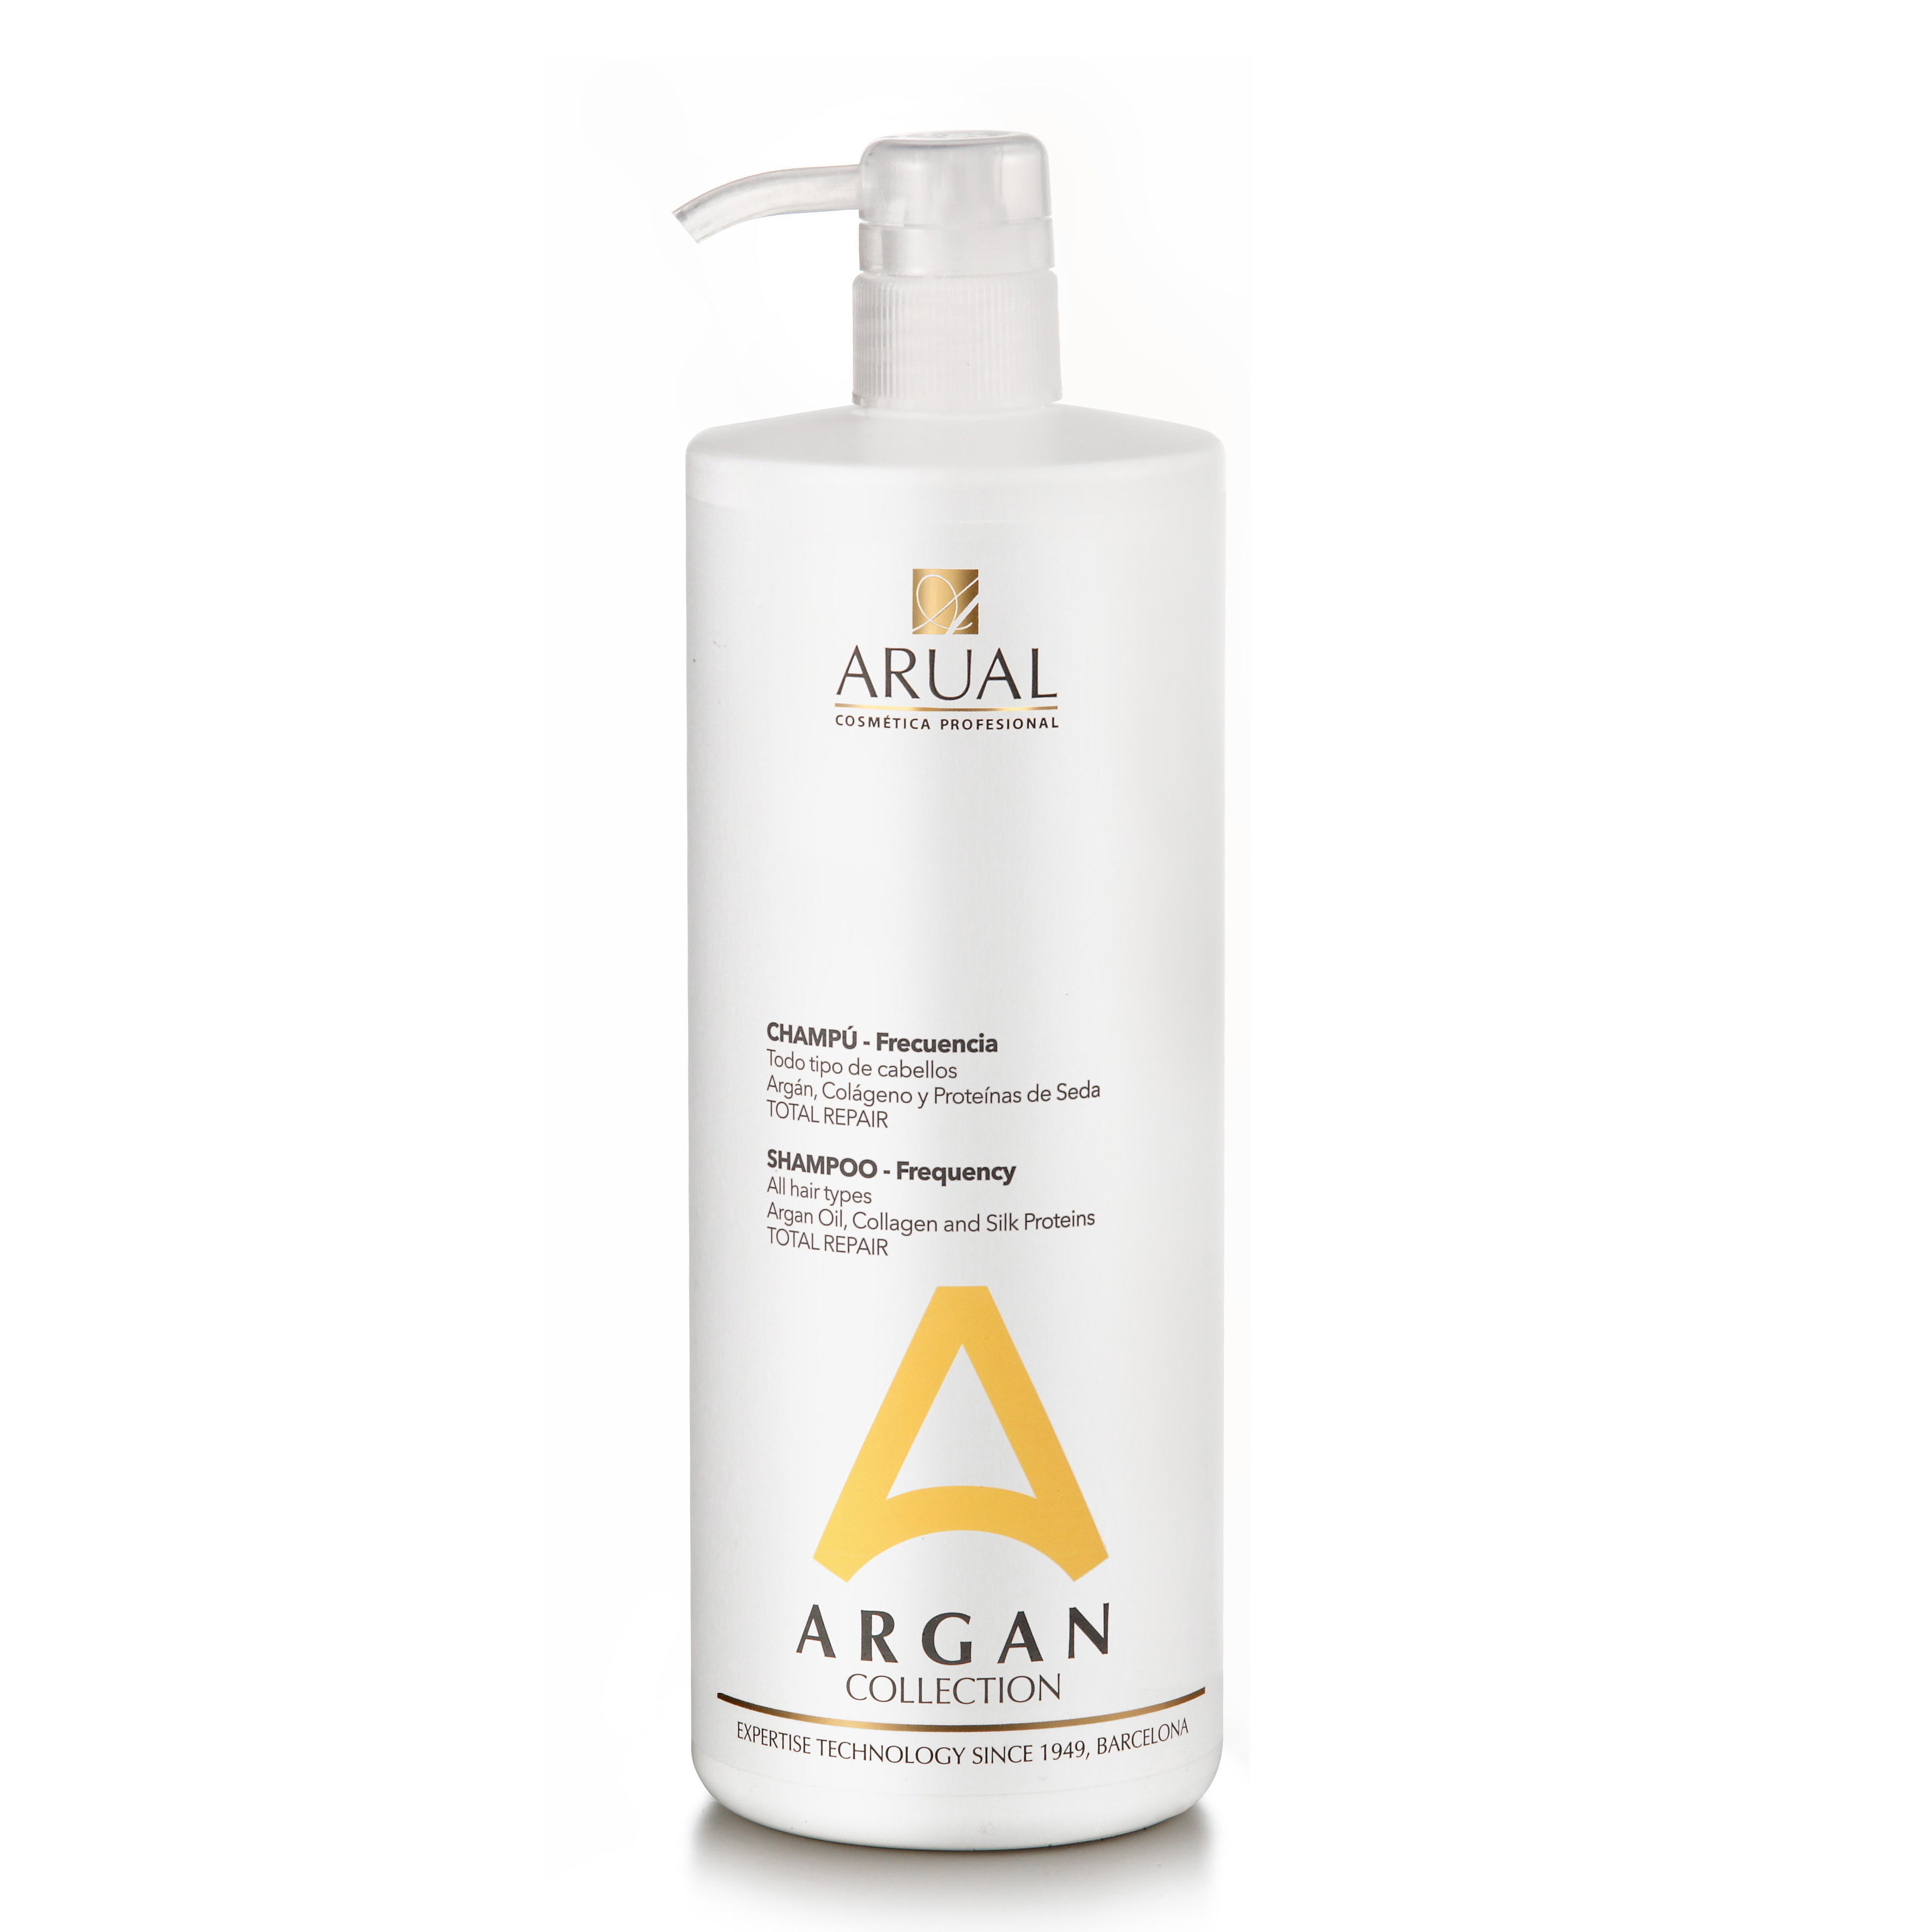 ARUAL FRECUENCIA ARGAN COLLECTION  CHAMPU  1 LITRO